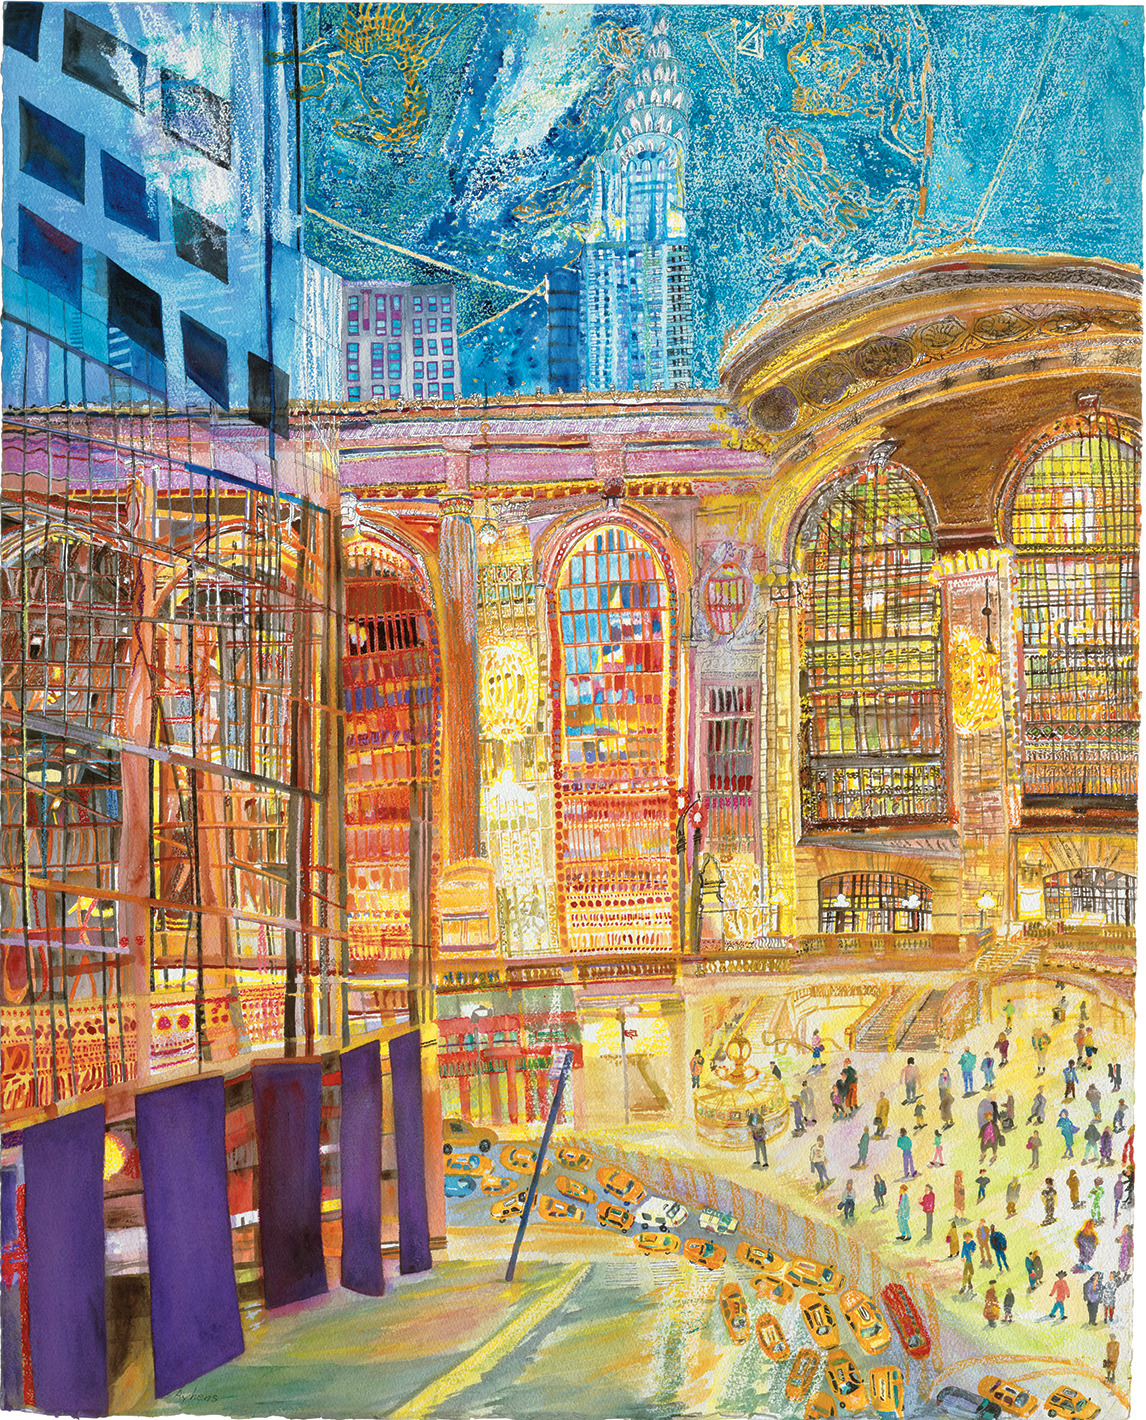 artsfortransit:   Today, we would like to spotlight painter Olive Ayhens who created two beautiful pieces of artwork for our ONTIME/Grand Central at 100 exhibition. Ayhens hones in on the architectural details from above to create a swirling, bold tapestry of color that conveys the reflection of life both inside and outside Grand Central Terminal. She uses the constellations as the sky above the terminal, freeing them from their earthly architecture. Also, keep a look out for her poster… coming to a subway near you!